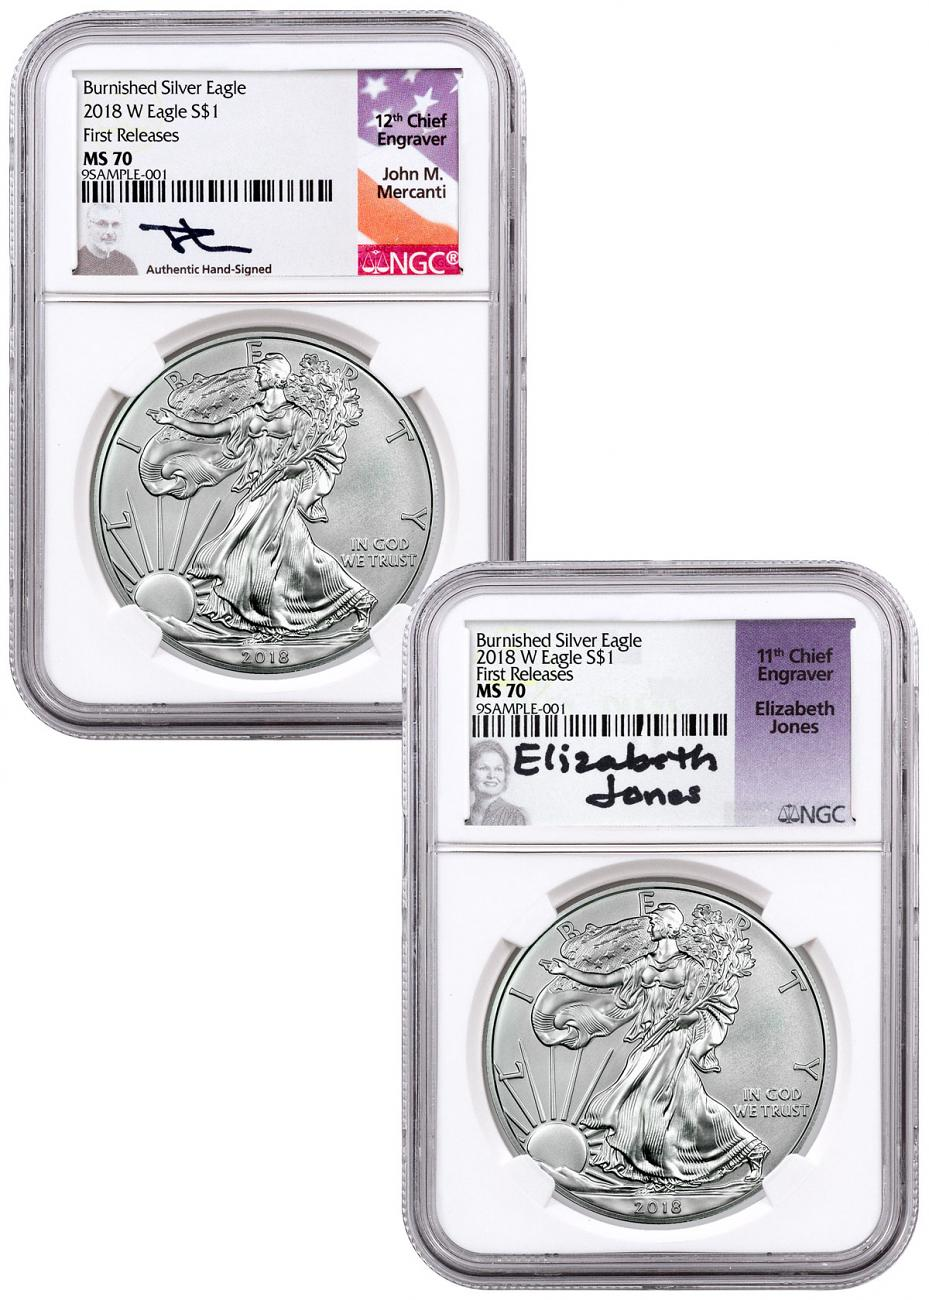 2-Coin Set - 2018-W Burnished American Silver Eagle NGC MS70 FR Mercanti + Jones Signed Labels